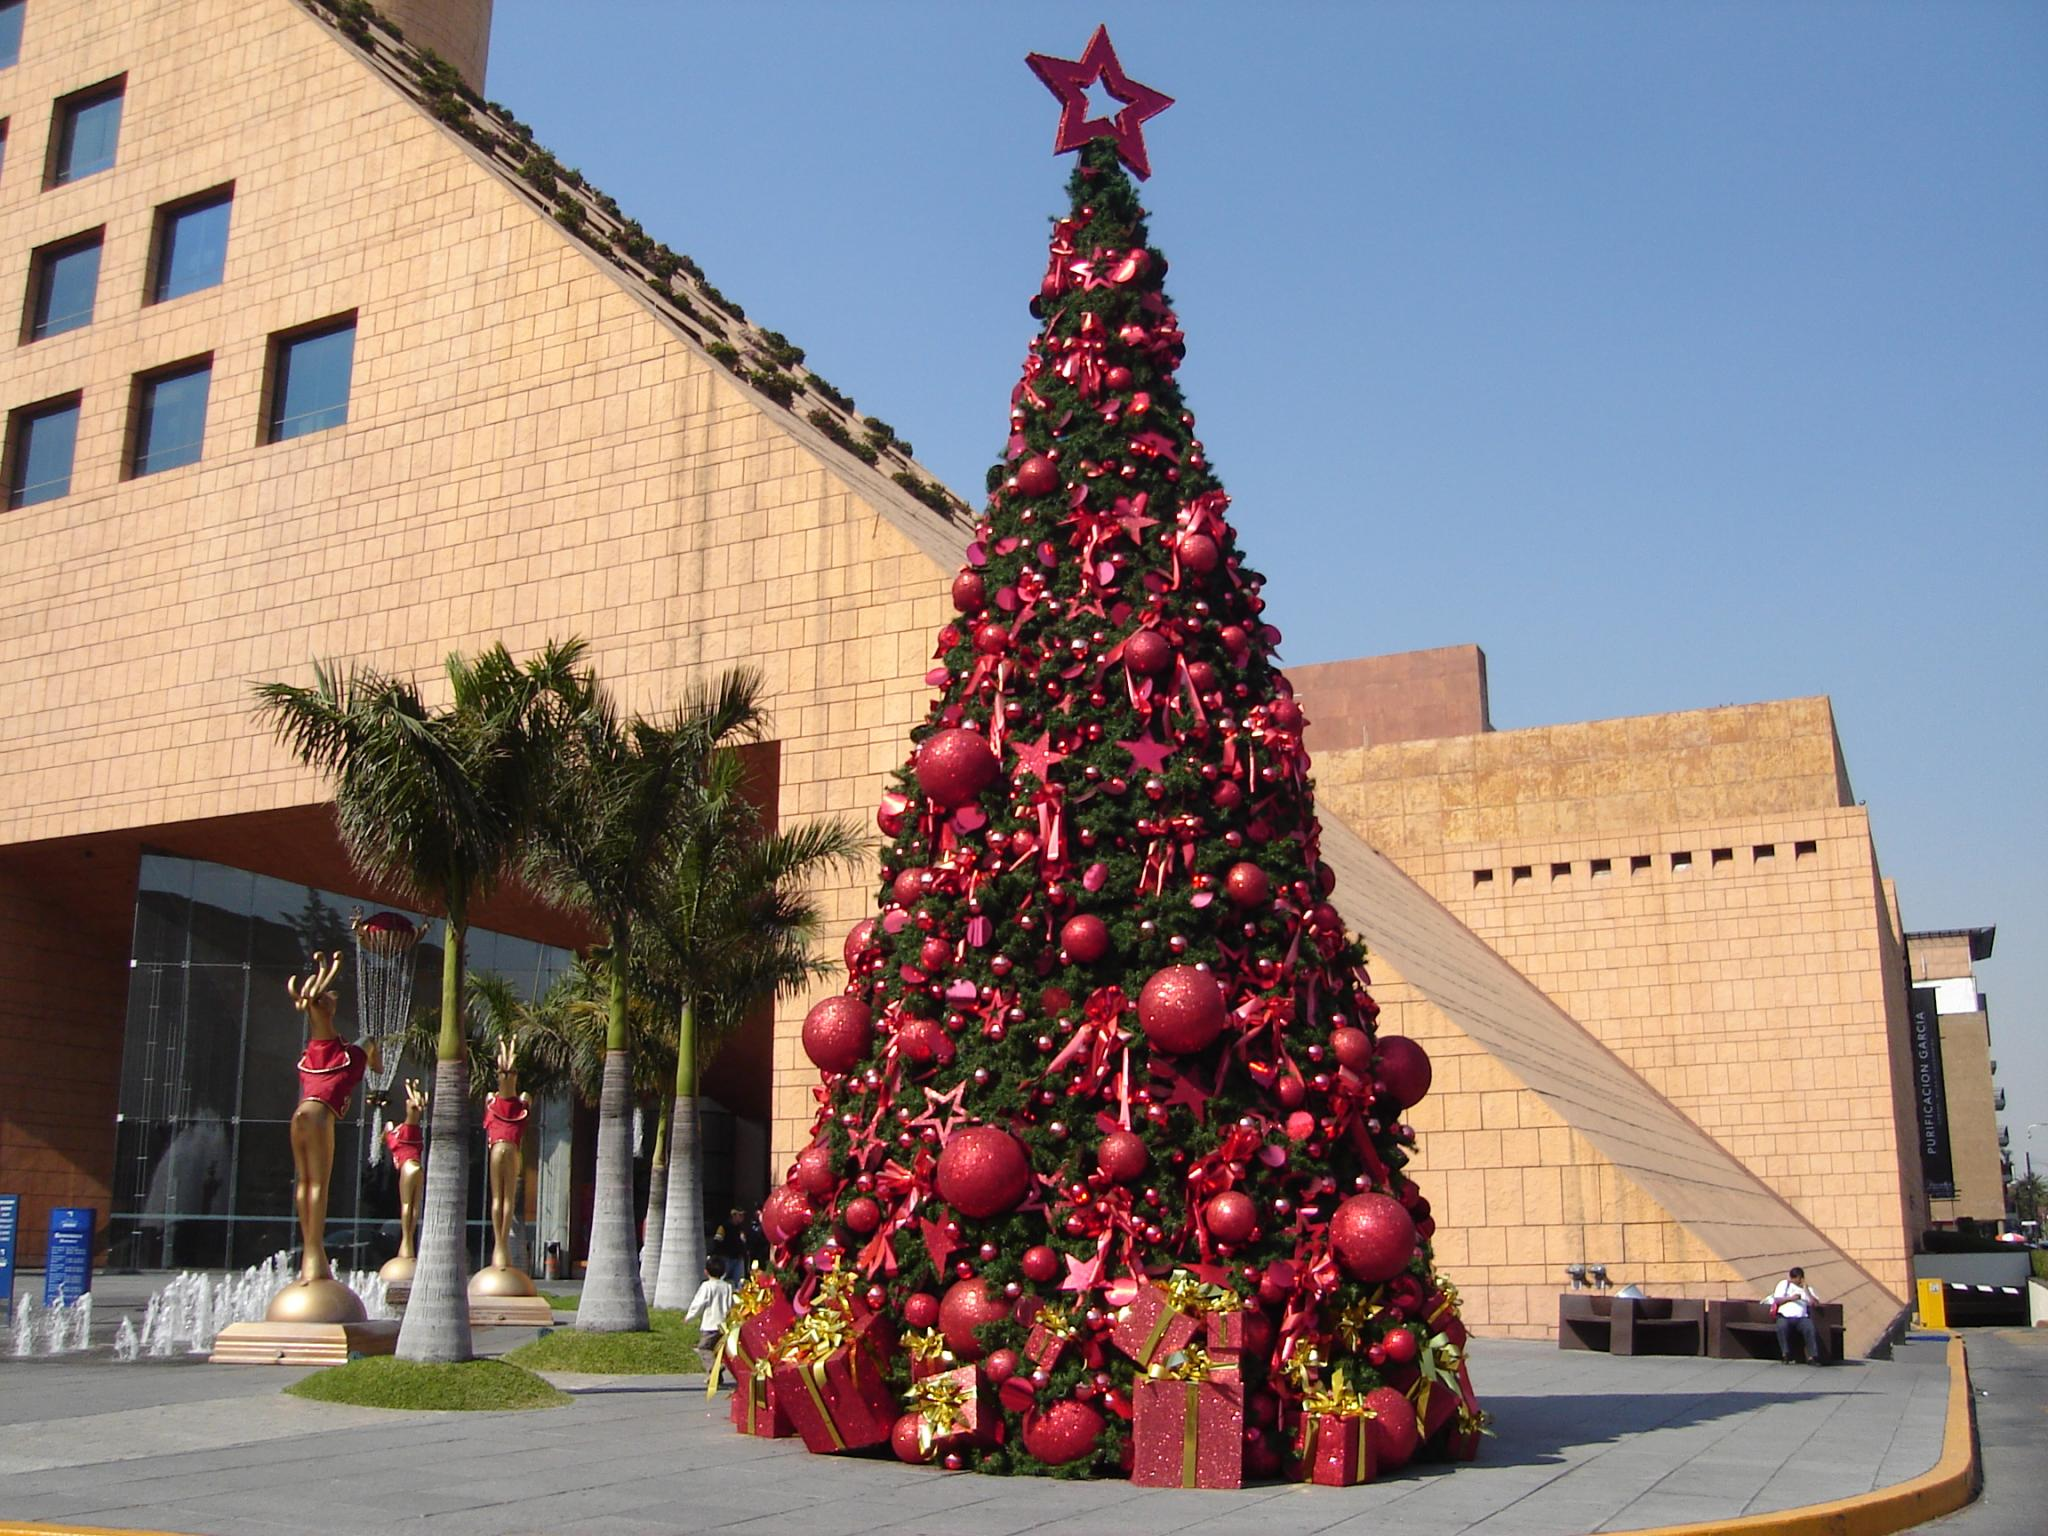 FileChristmas Tree In Moliere Shopping Malljpg